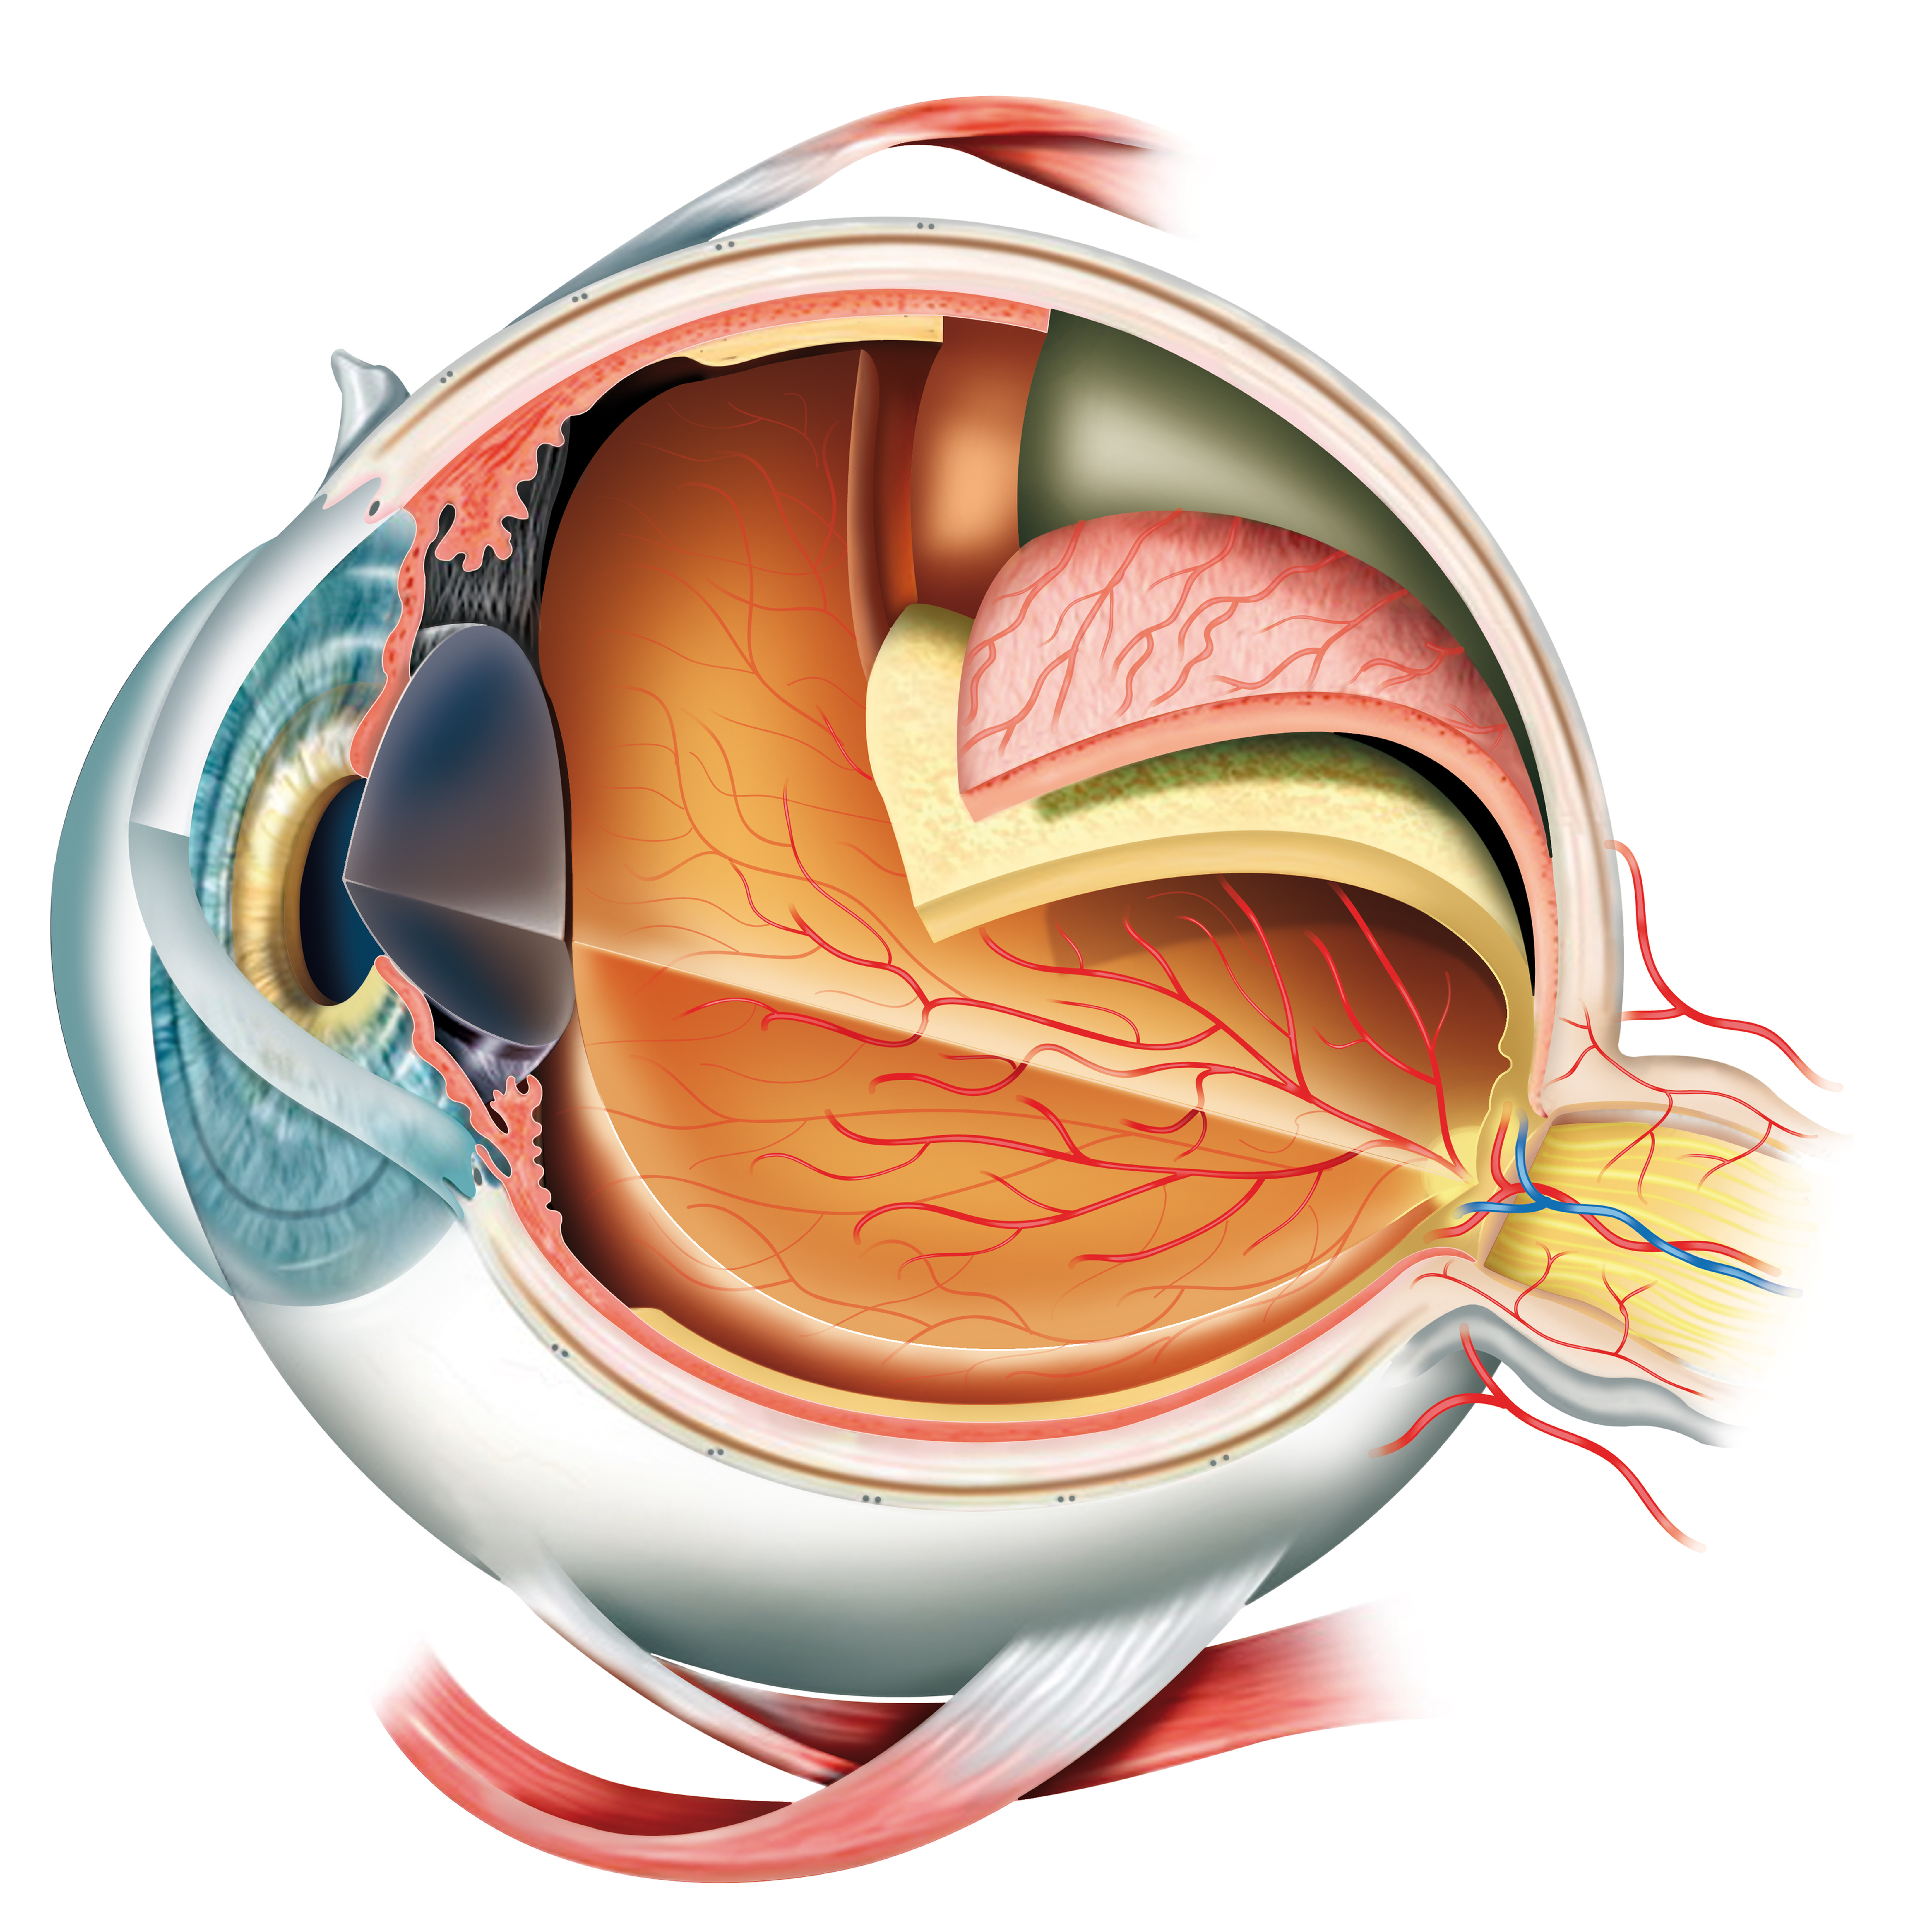 eye anatomy illustration_92433742 - Retina Group of New York